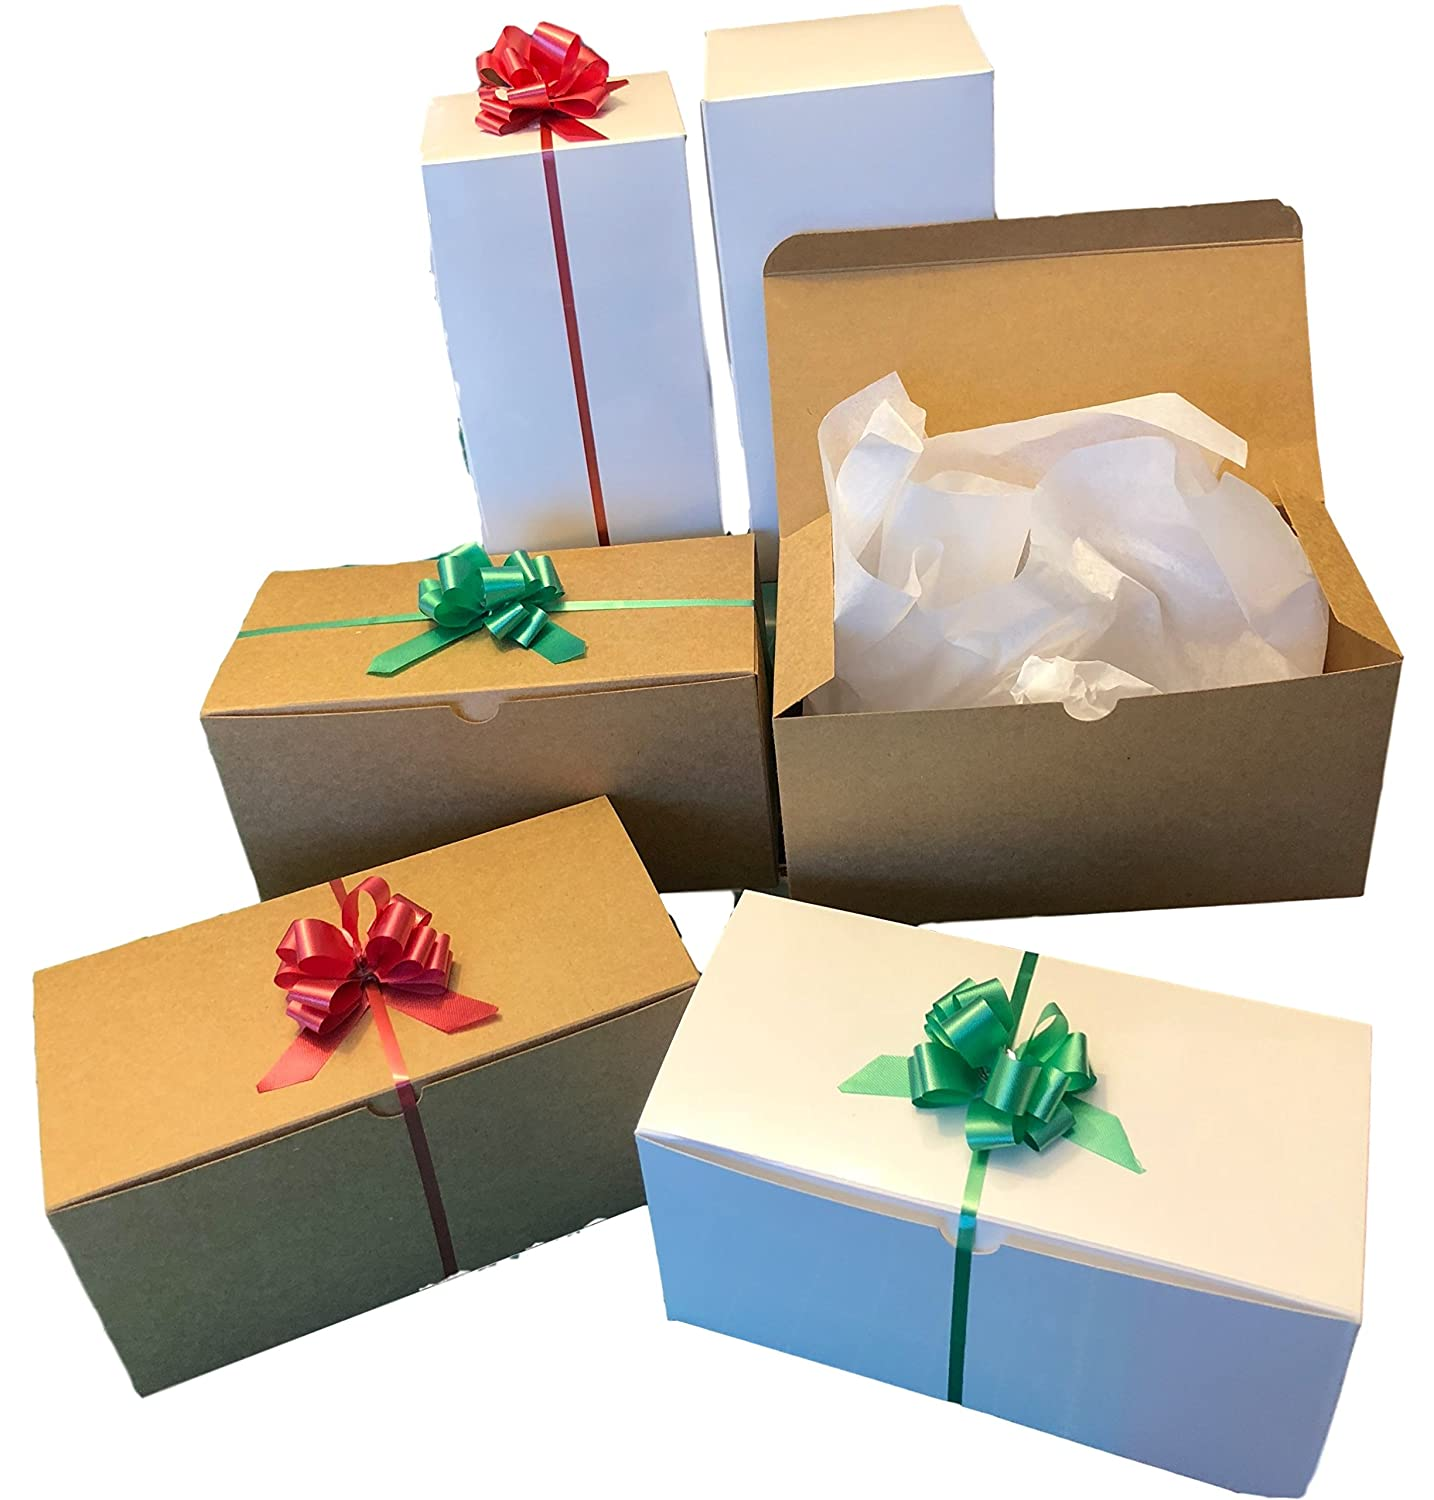 Amazon.com Set of 10 White and Kraft Gift Boxes (9x4.5x4.5 ) + 10 Pull Bows + Tissue Paper. Perfect for Wrapping Christmas Presents Health u0026 Personal Care  sc 1 st  Amazon.com & Amazon.com: Set of 10 White and Kraft Gift Boxes (9x4.5x4.5